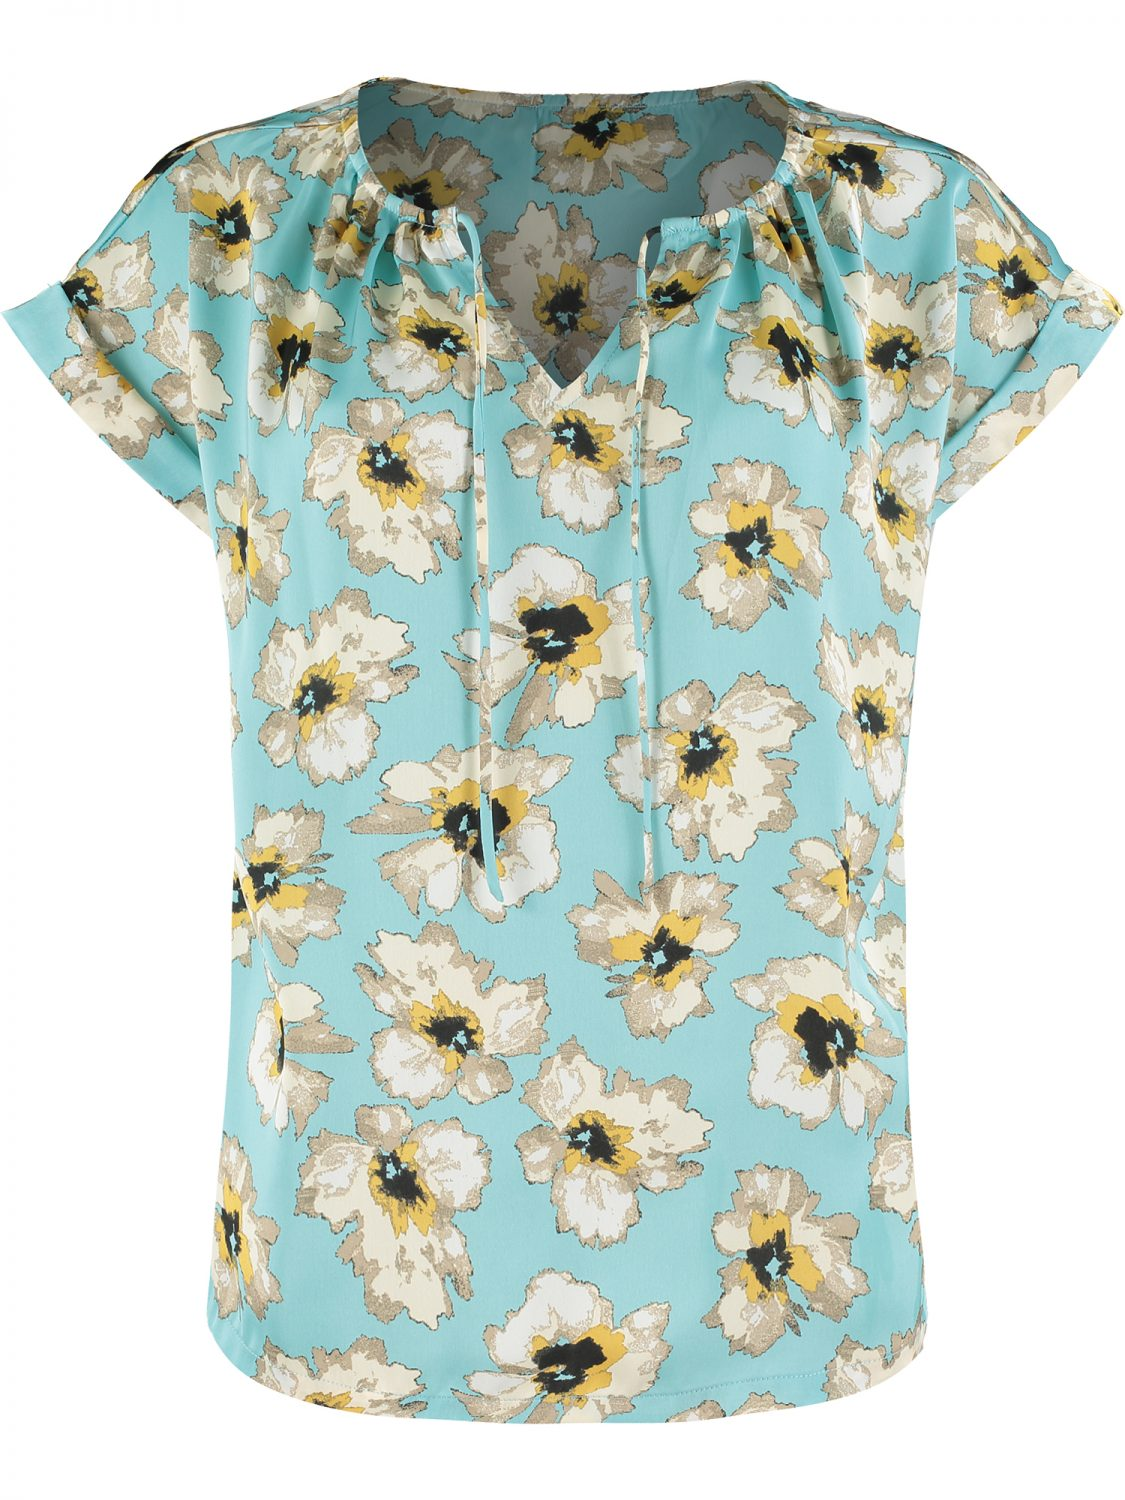 Turquoise Floral Top F